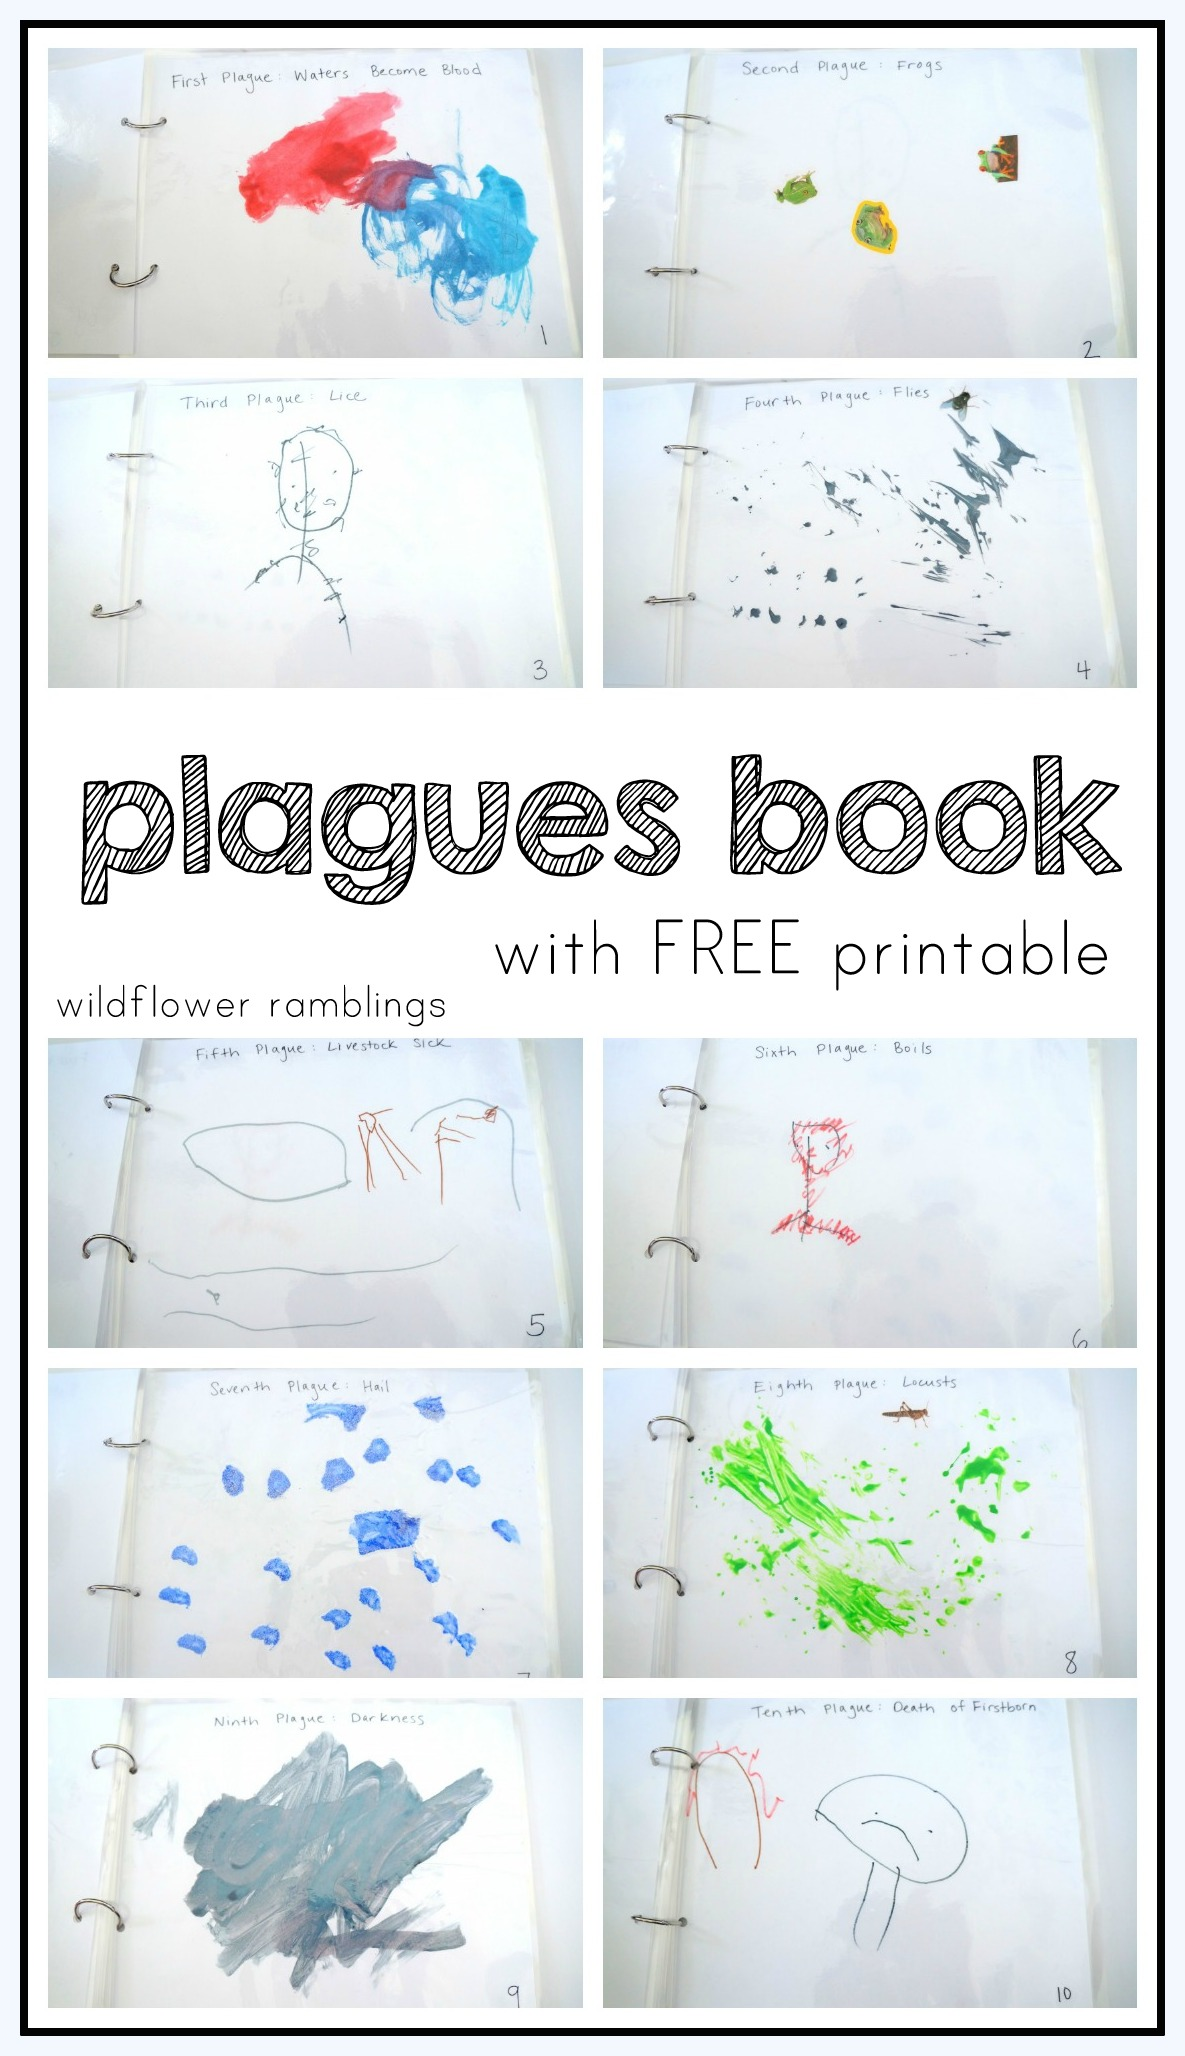 graphic regarding 10 Plagues Printable known as deliver your personalized plagues ebook free of charge printable - Wildflower